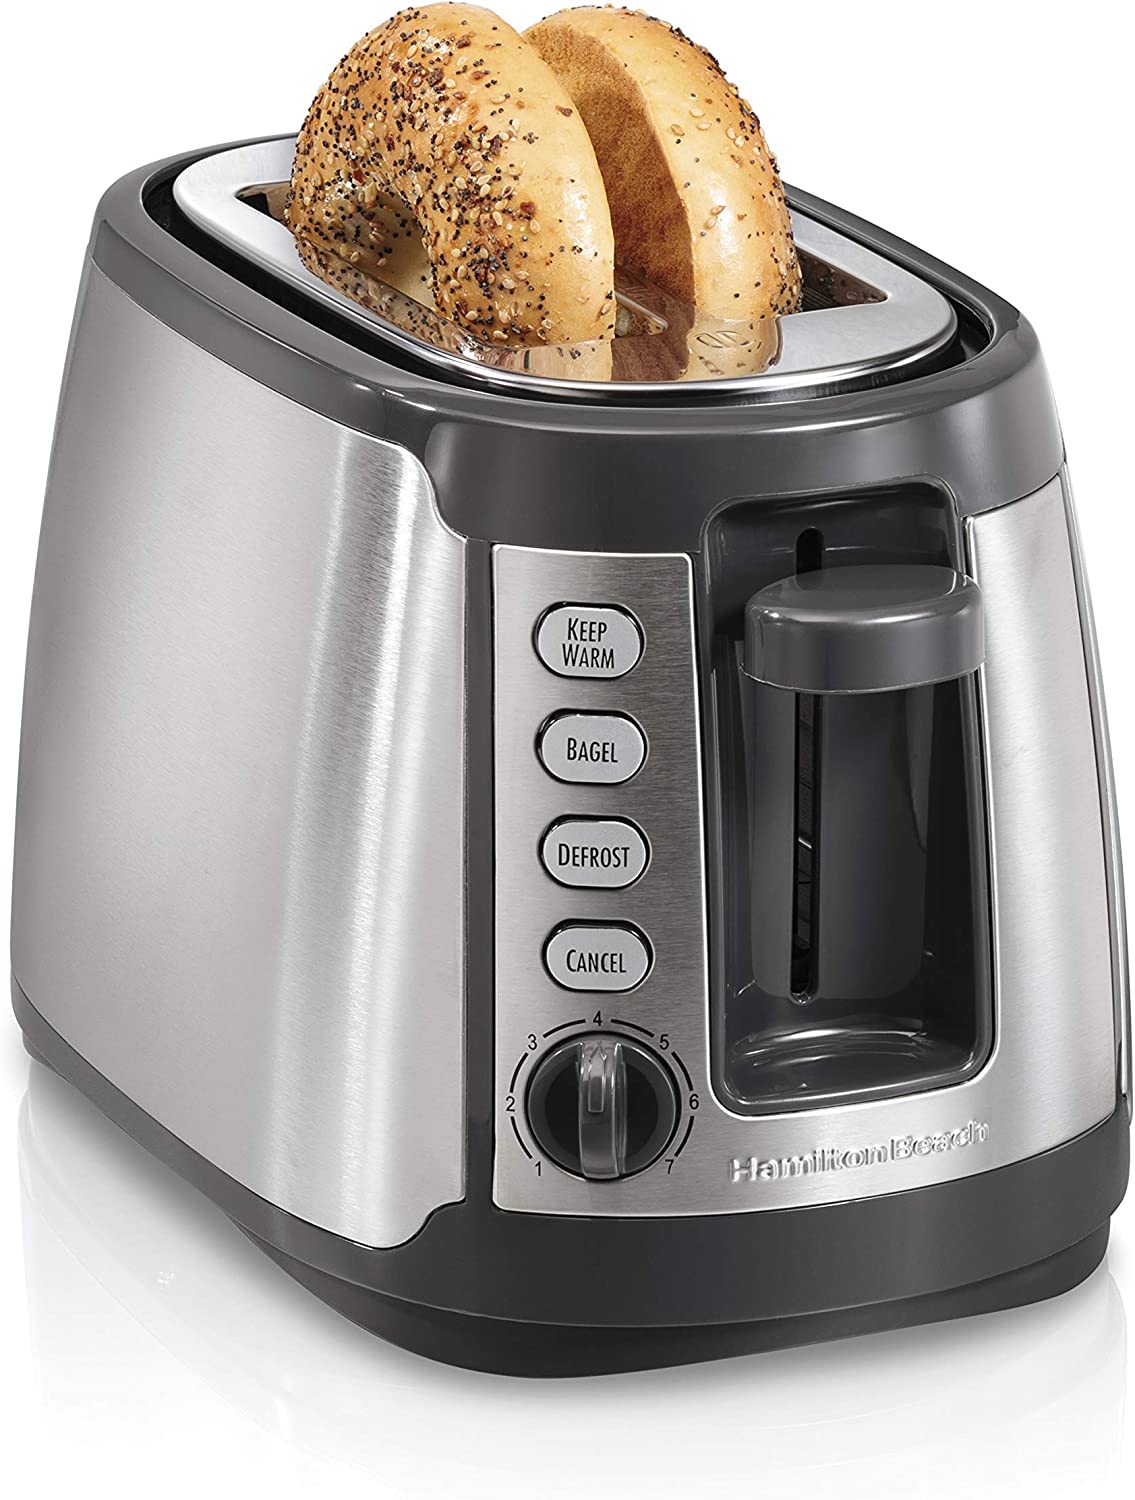 Hamilton Beach 22816 Slice Toaster with Keep Warm, Bagel, Defrost Settings, Silver with Gray (Renewed)